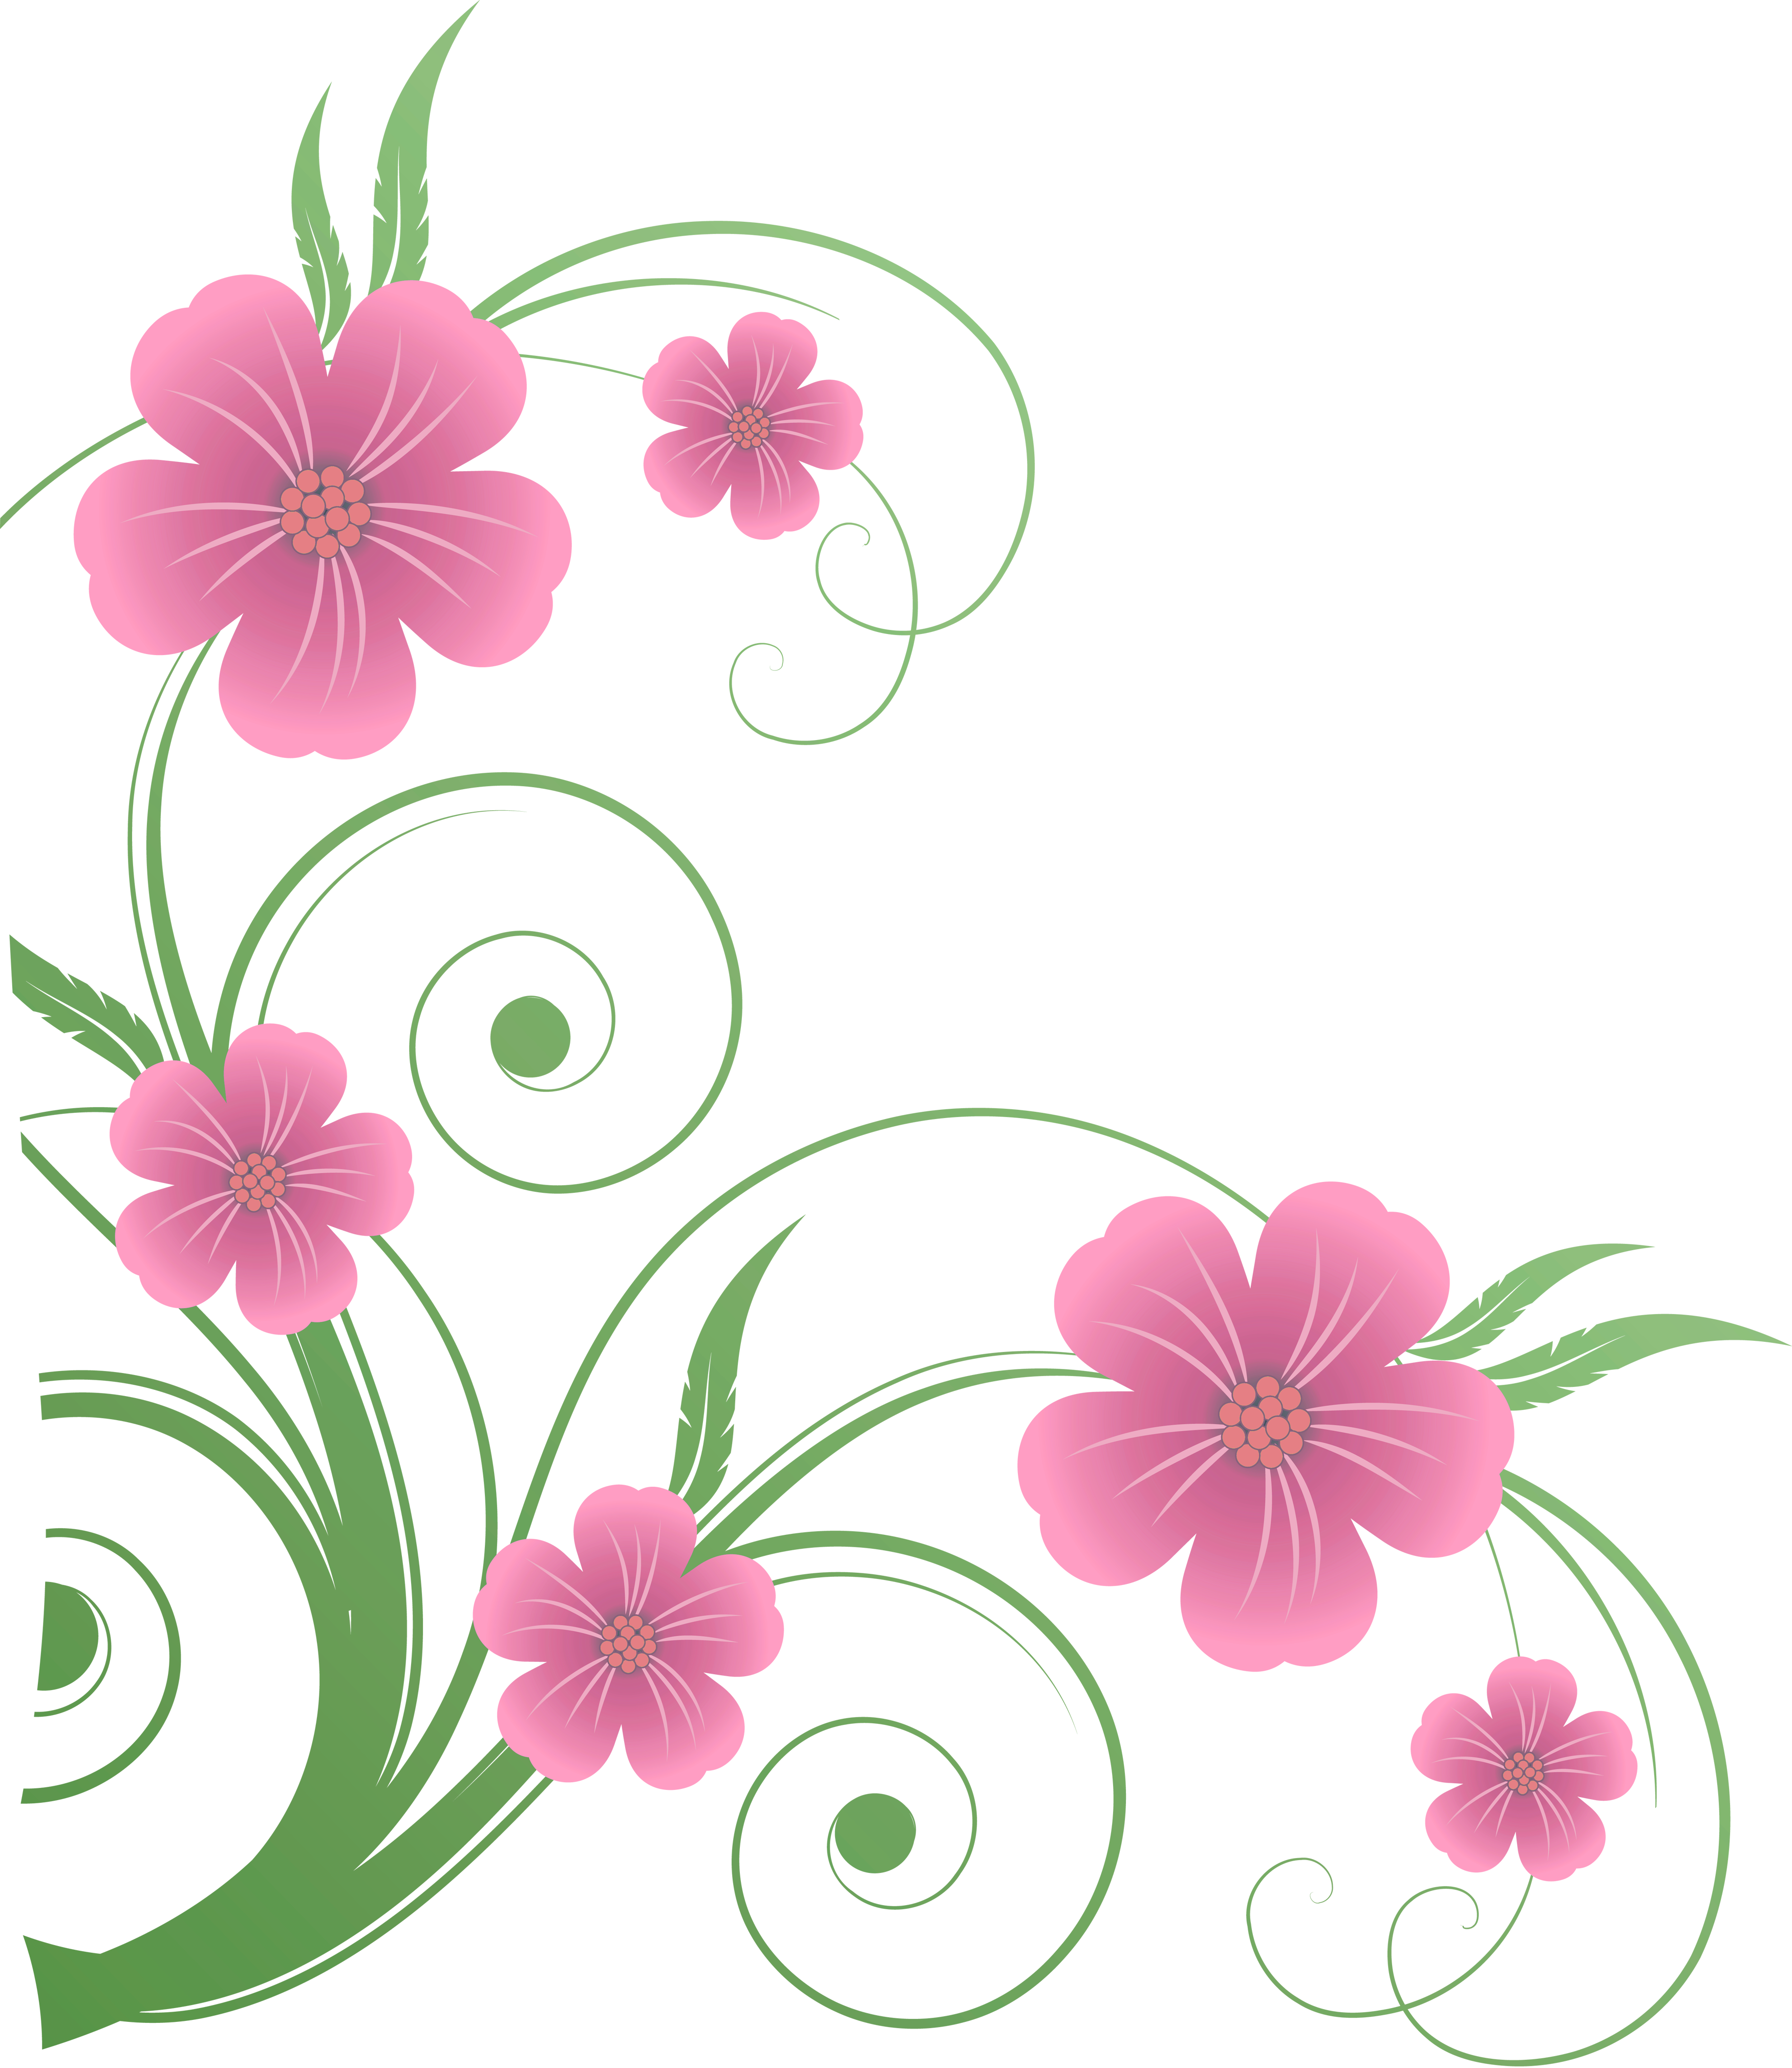 Flower clip art png image black and white Flowers PNG Decorative Element Clipart | Flowers | Pinterest ... image black and white